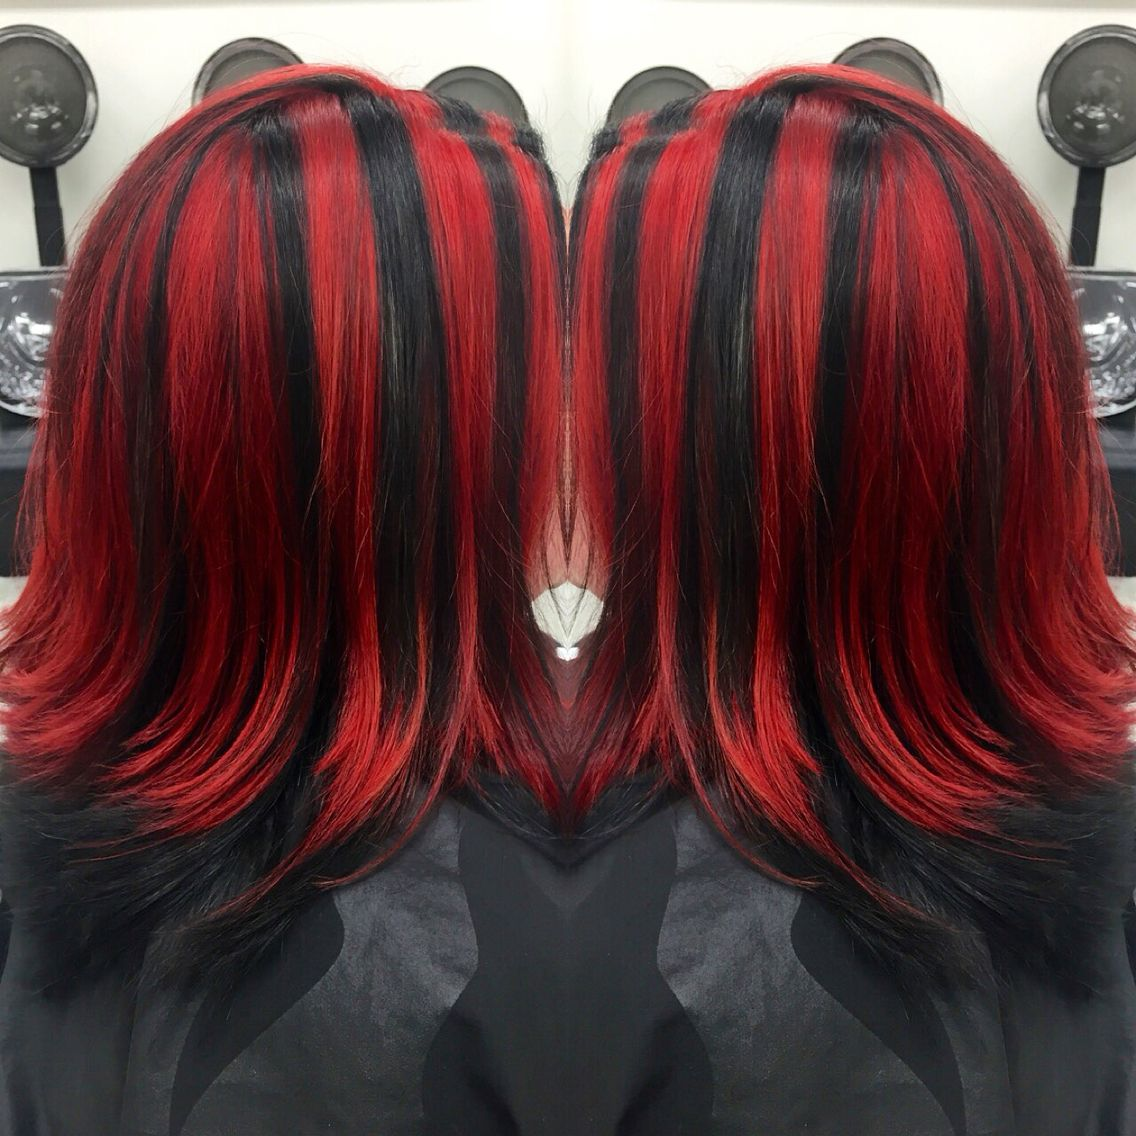 Coiffure N Hair J Red And Black Chunky Highlights Hair Inspiration